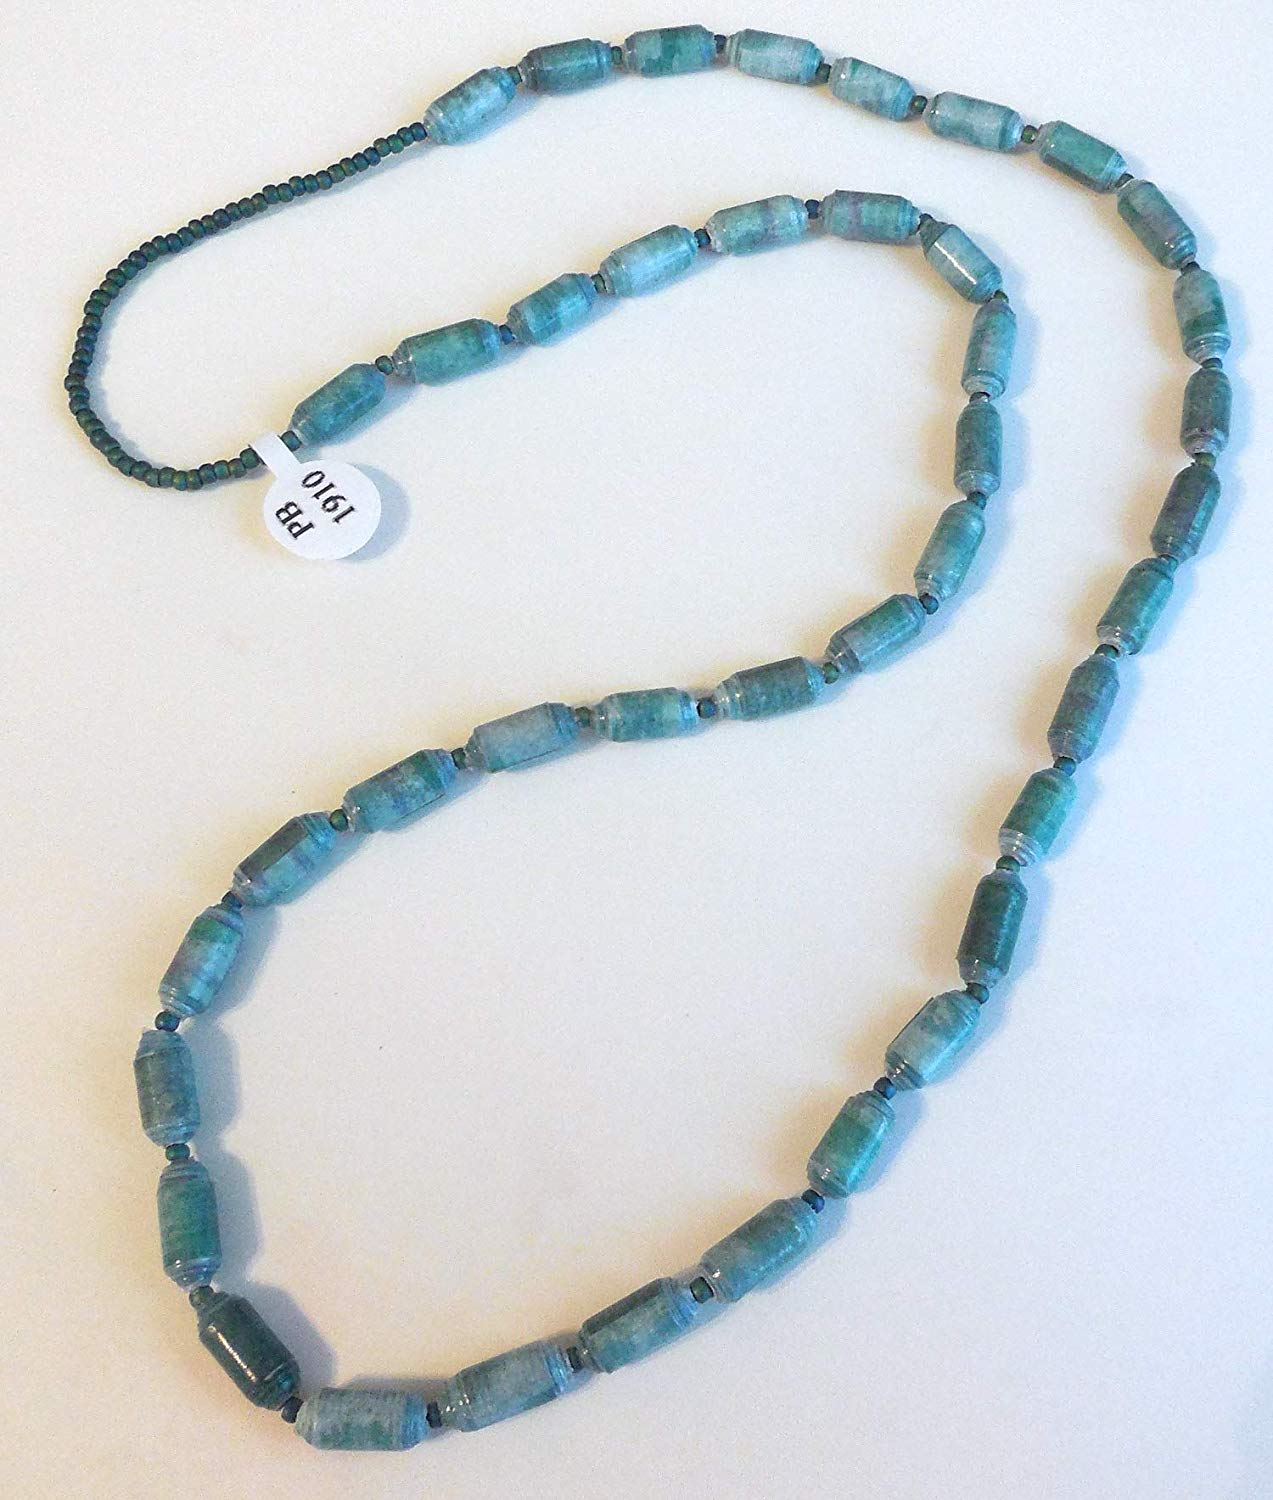 Paper Bead Necklace Handmade PB 1910